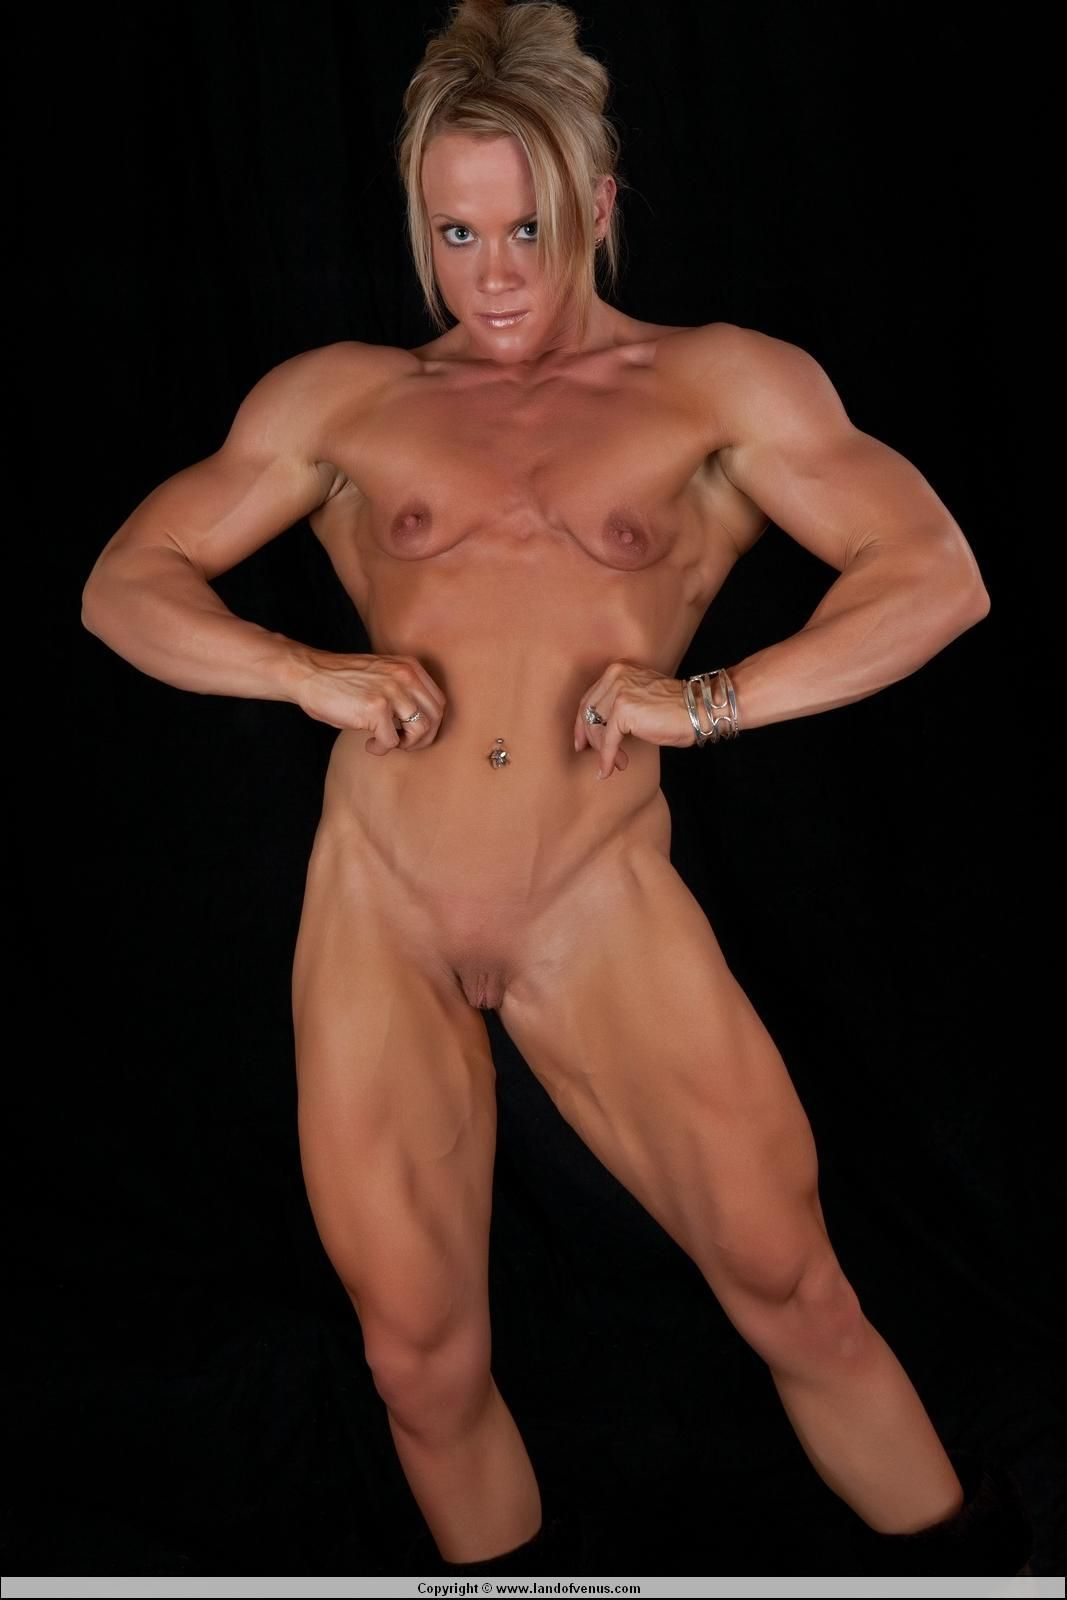 Naked women pic body builder magnificent idea